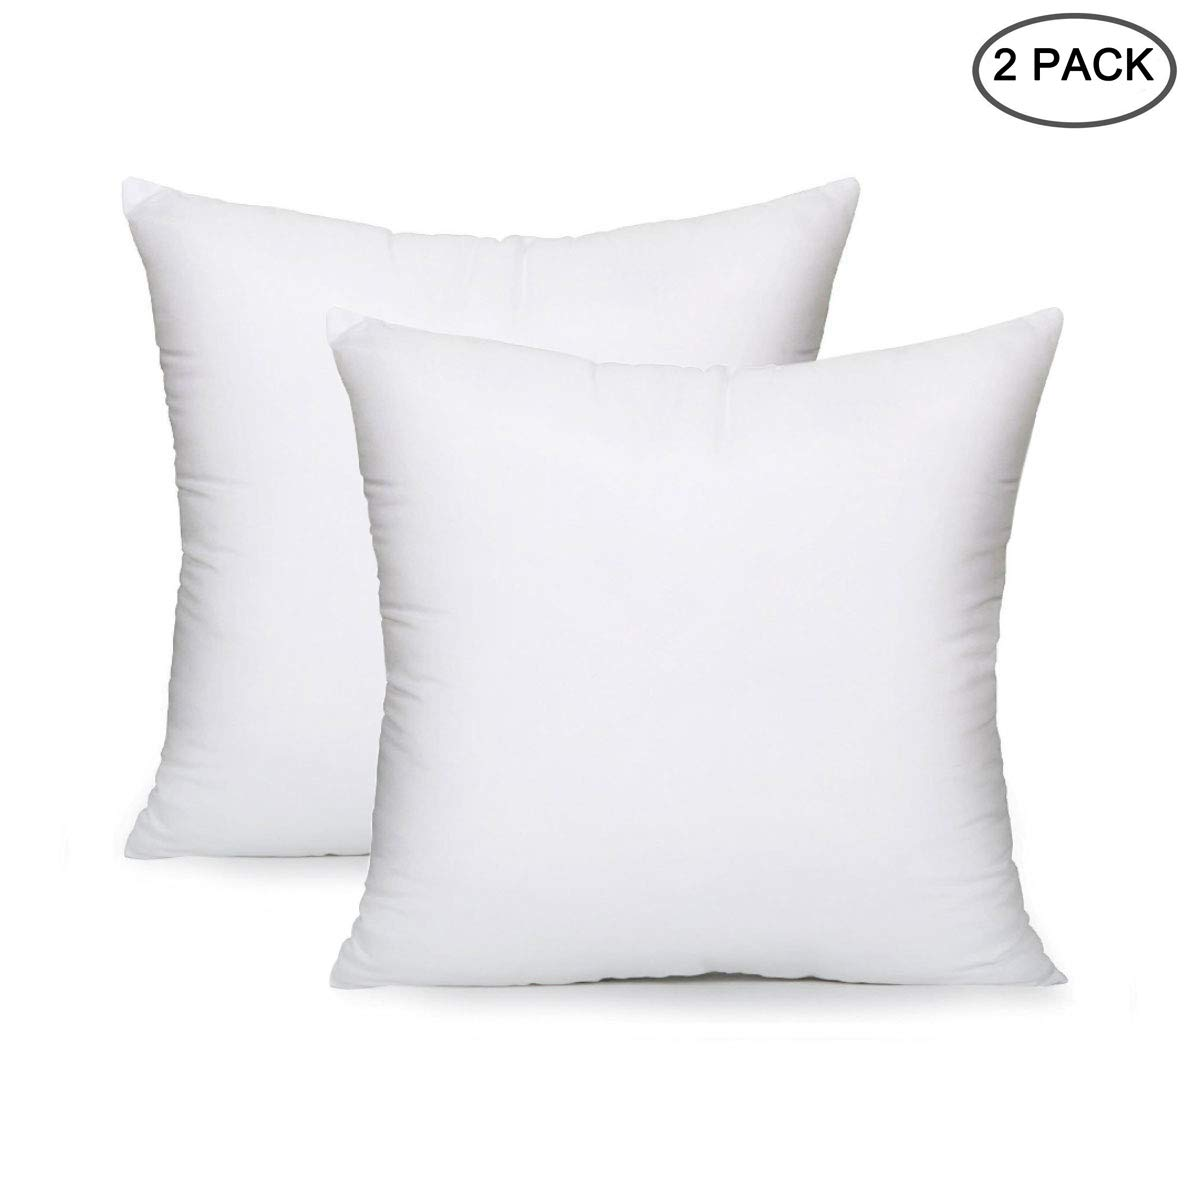 "EVERMARKET Square Sham Stuffer Hypo-Allergenic Poly Pillow Form Insert Pure White, 18"" L x 18"" W (2 Pack)"